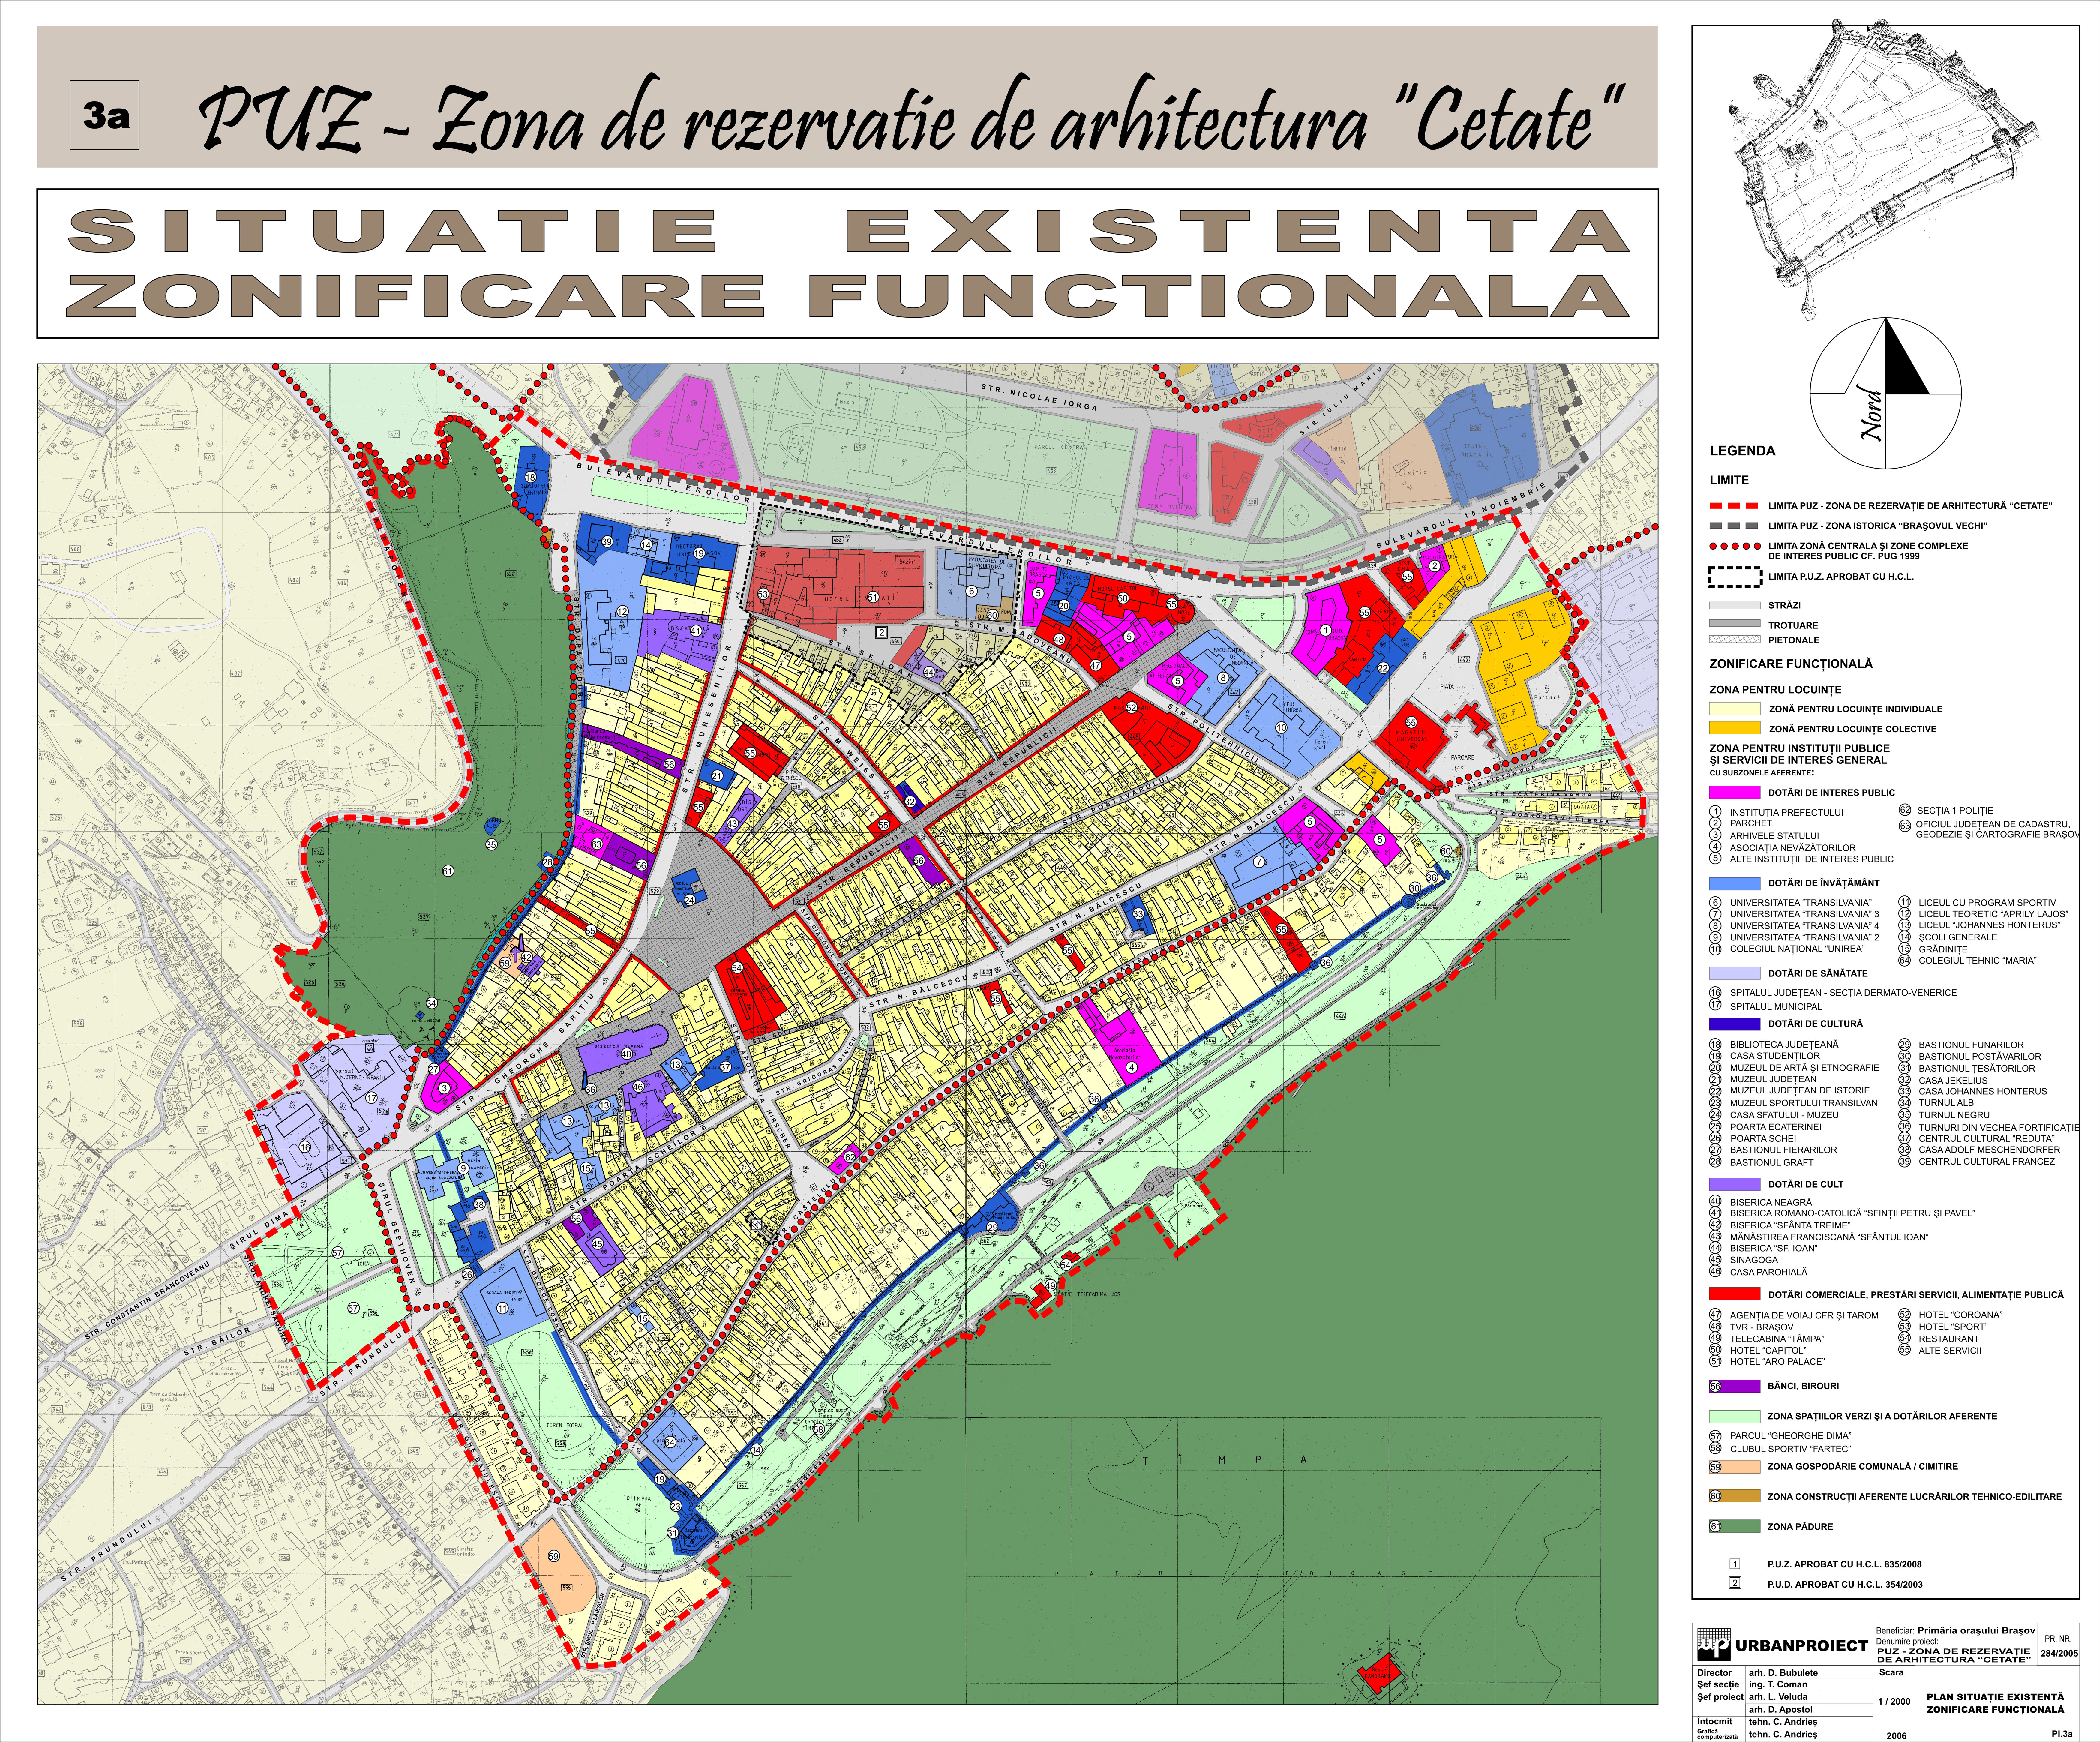 3a_SITUATIE_EXIST_ZONIFICARE_FUNCTIONALA-2